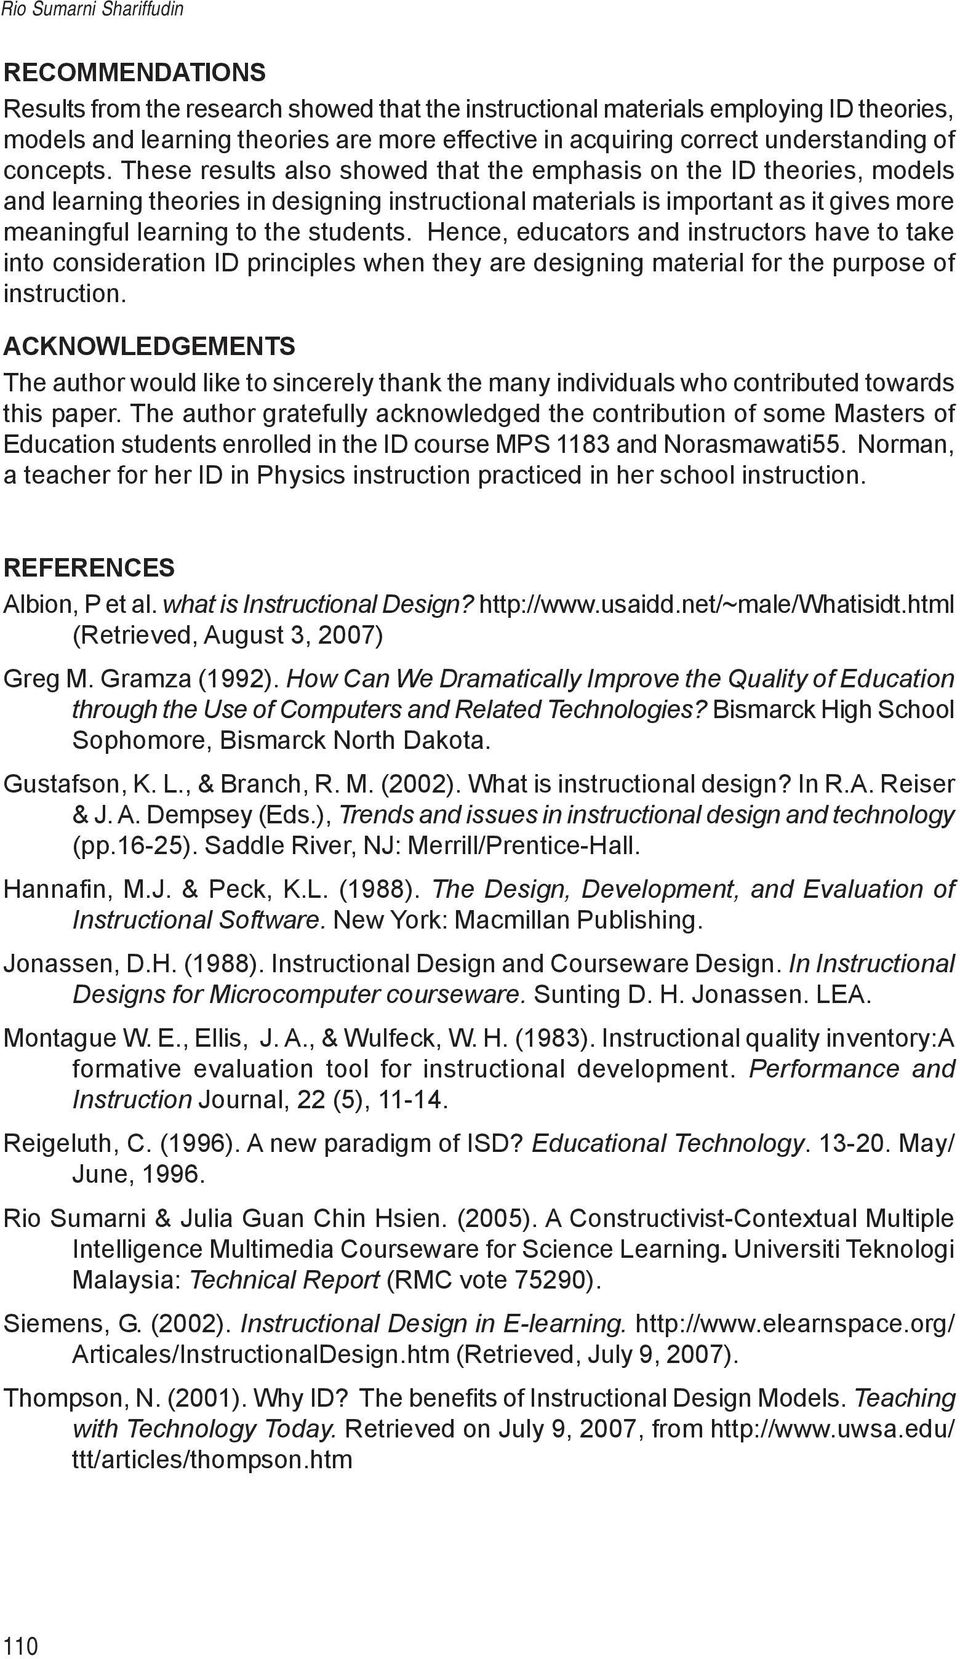 Design Of Instructional Materials For Teaching And Learning Purposes